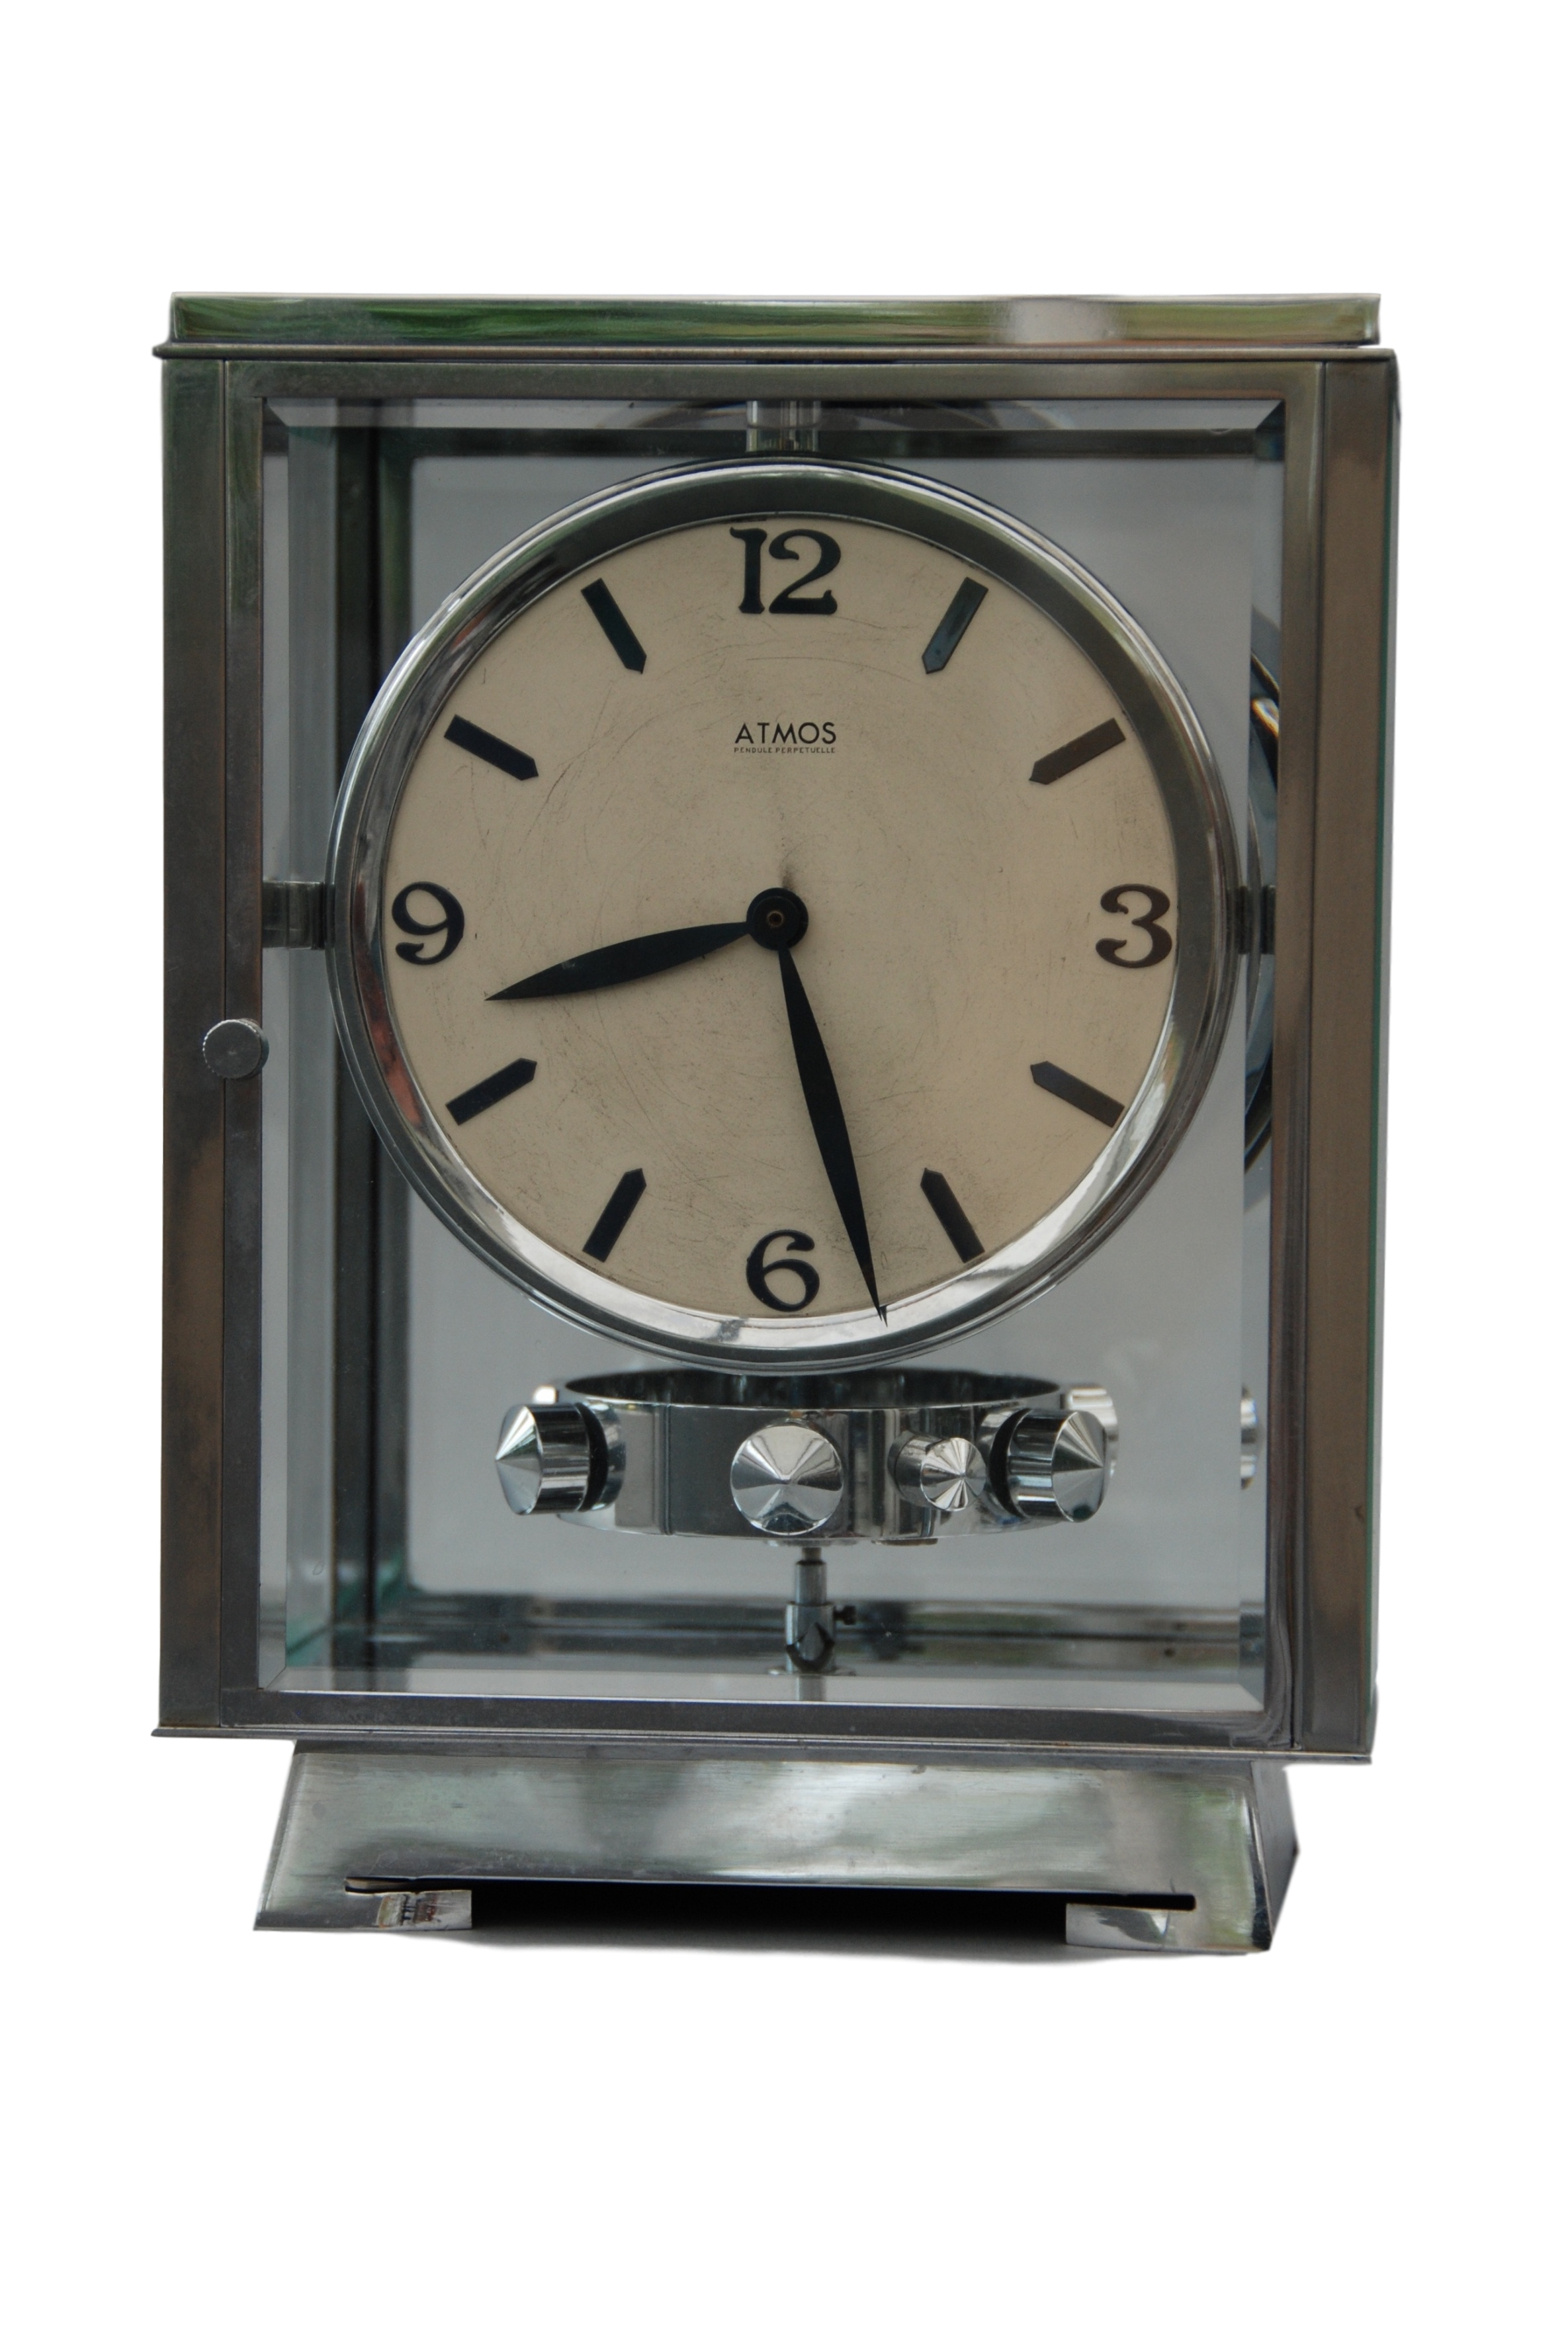 An early 1932 Rhodium plated art deco J. L. Reutter four-glass clock